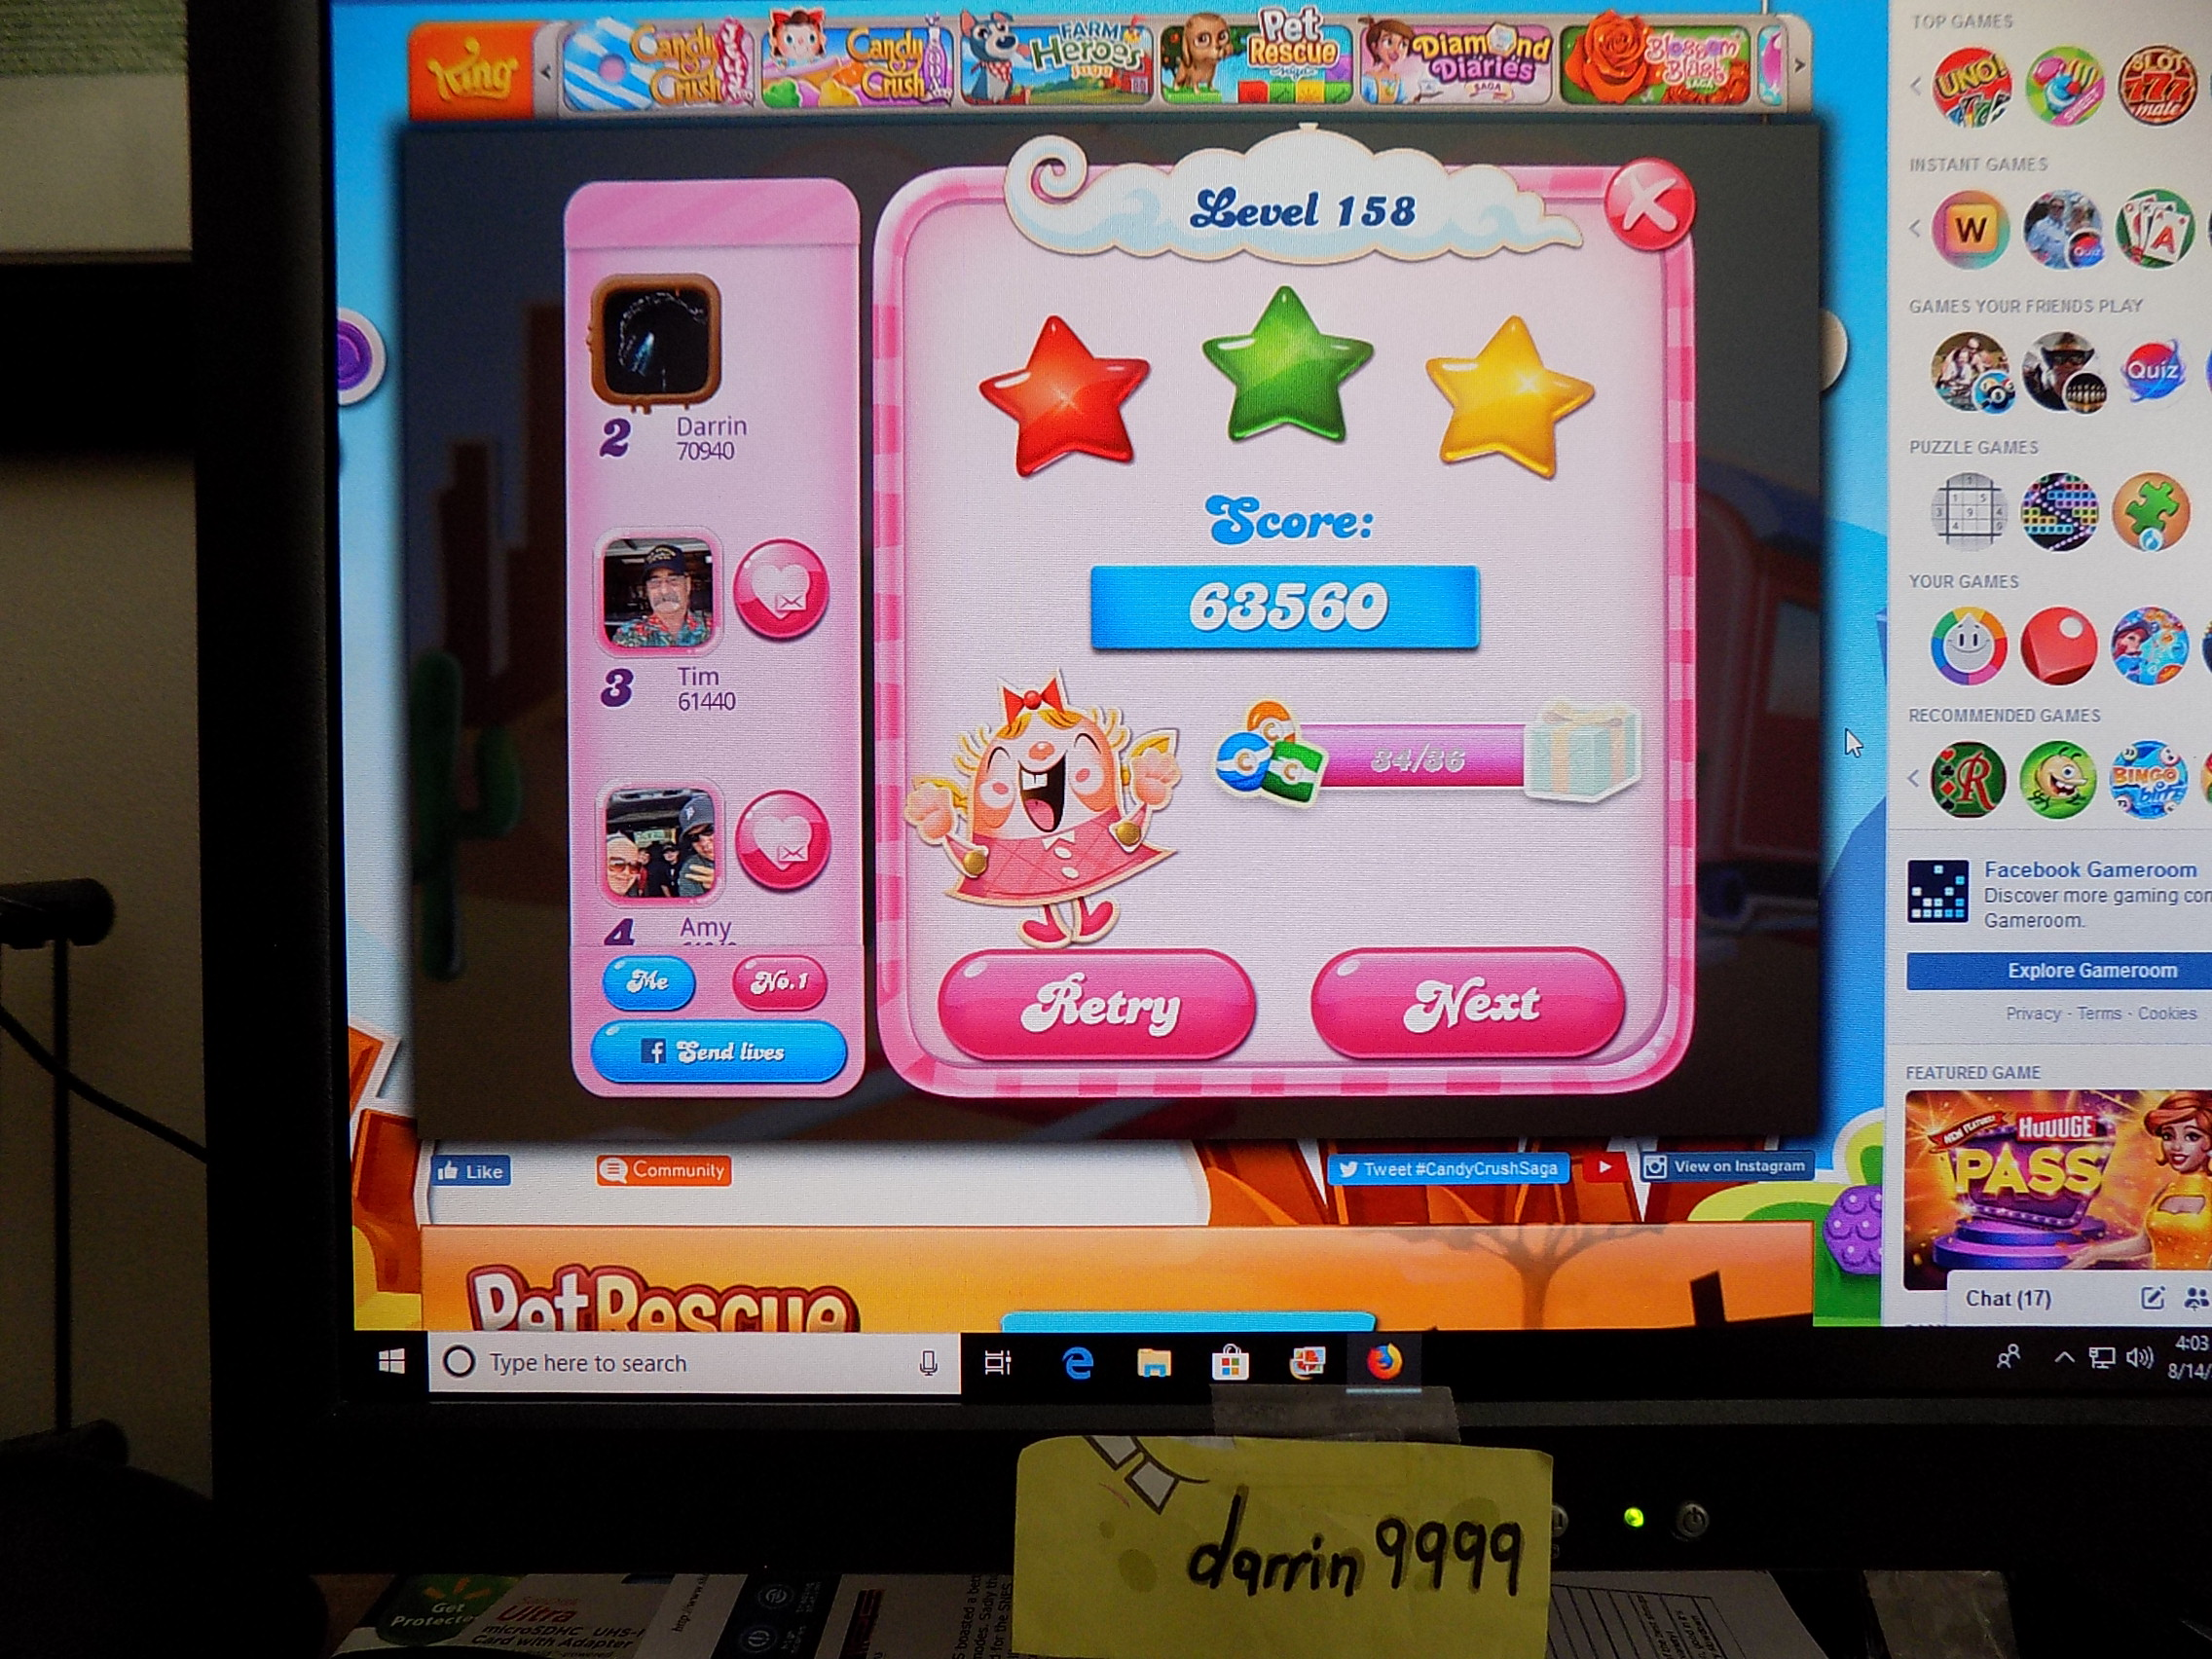 darrin9999: Candy Crush Saga: Level 158 (Web) 63,560 points on 2019-09-06 16:36:53